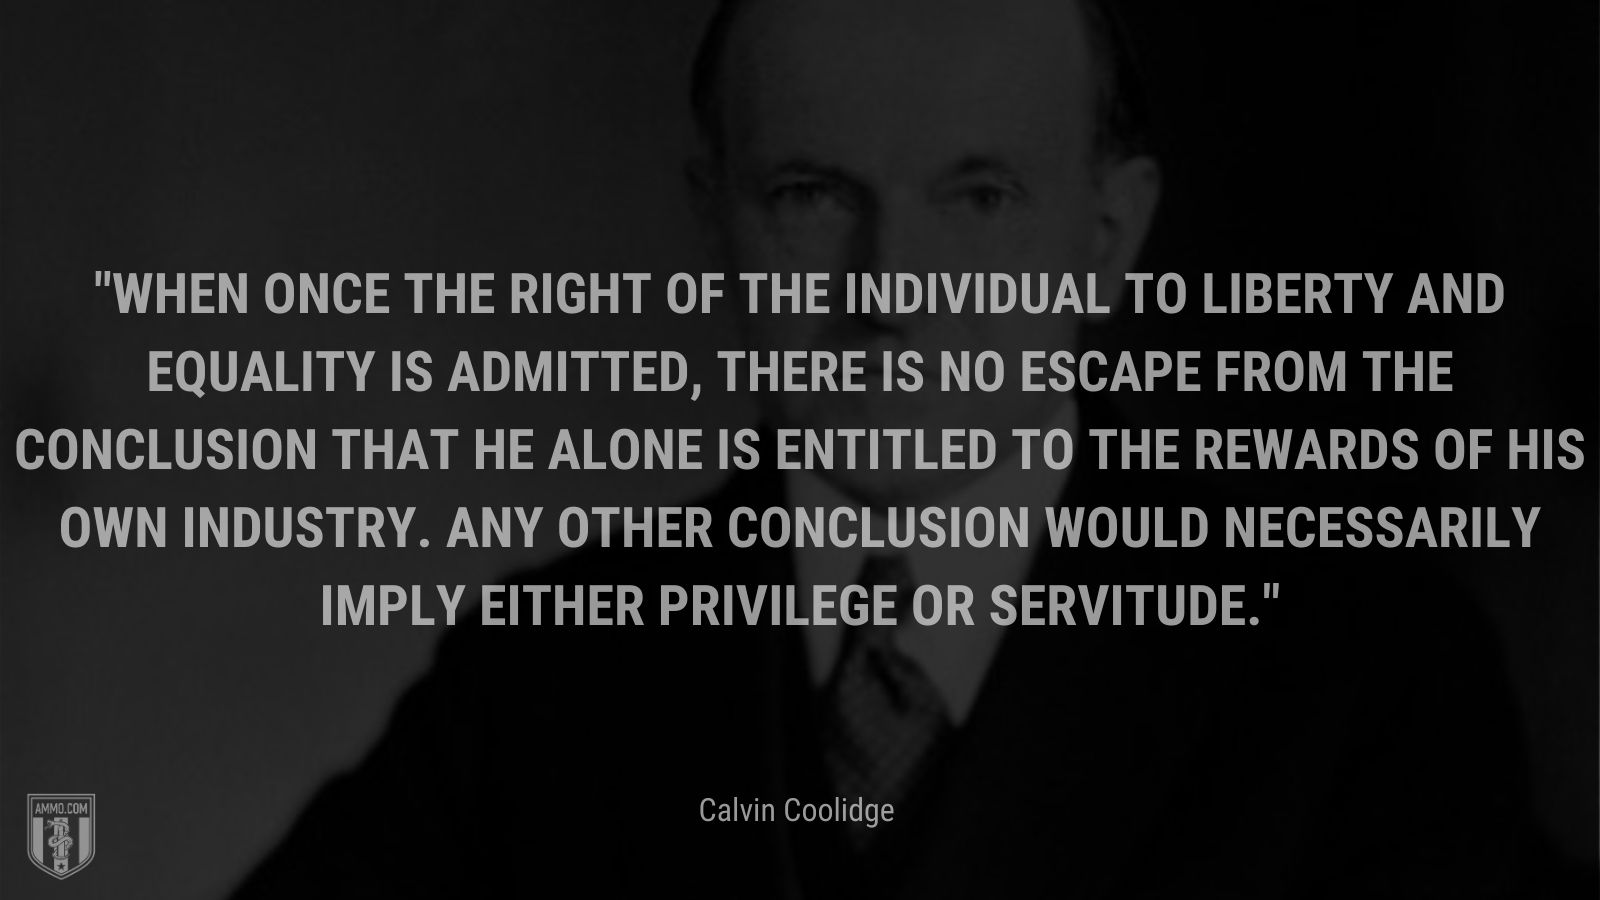 """""""When once the right of the individual to liberty and equality is admitted, there is no escape from the conclusion that he alone is entitled to the rewards of his own industry. Any other conclusion would necessarily imply either privilege or servitude."""" - Calvin Coolidge"""